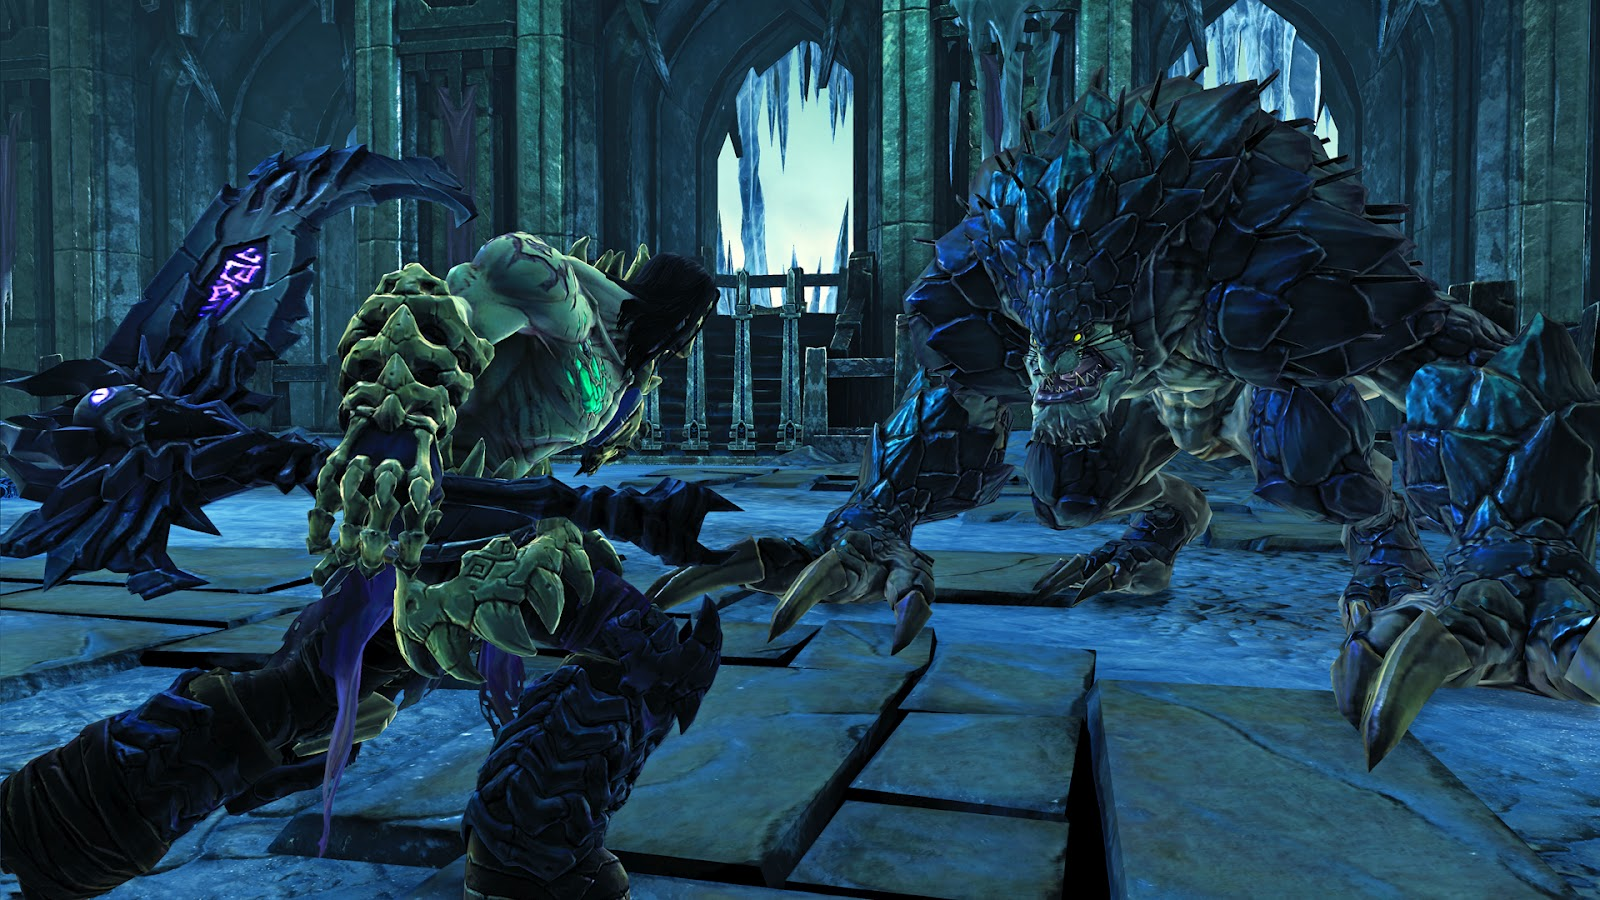 darksiders ii: argul's tomb and death rides pack (dlc review